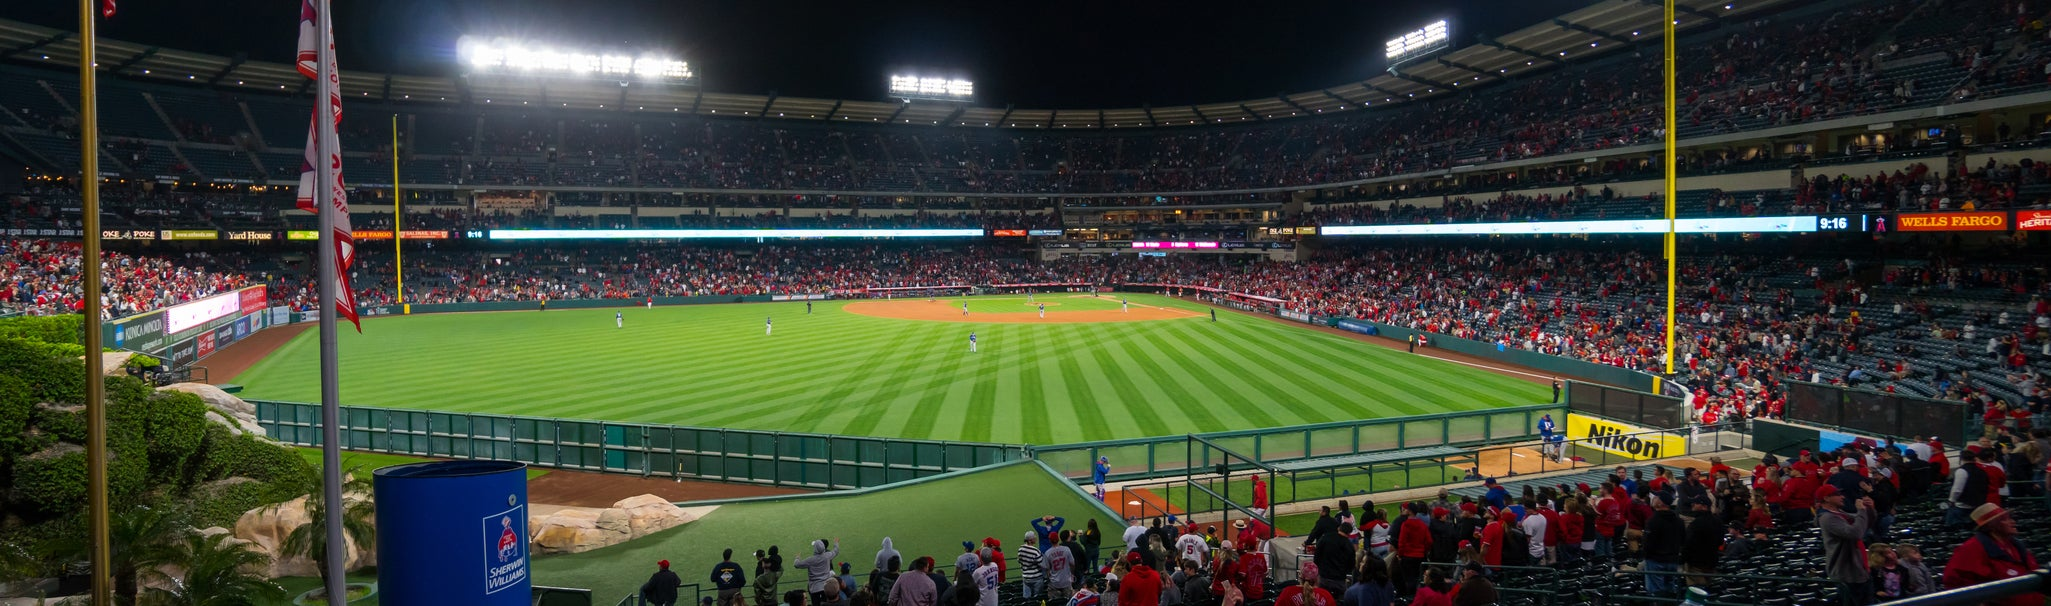 Seat view from Lower Pavilion